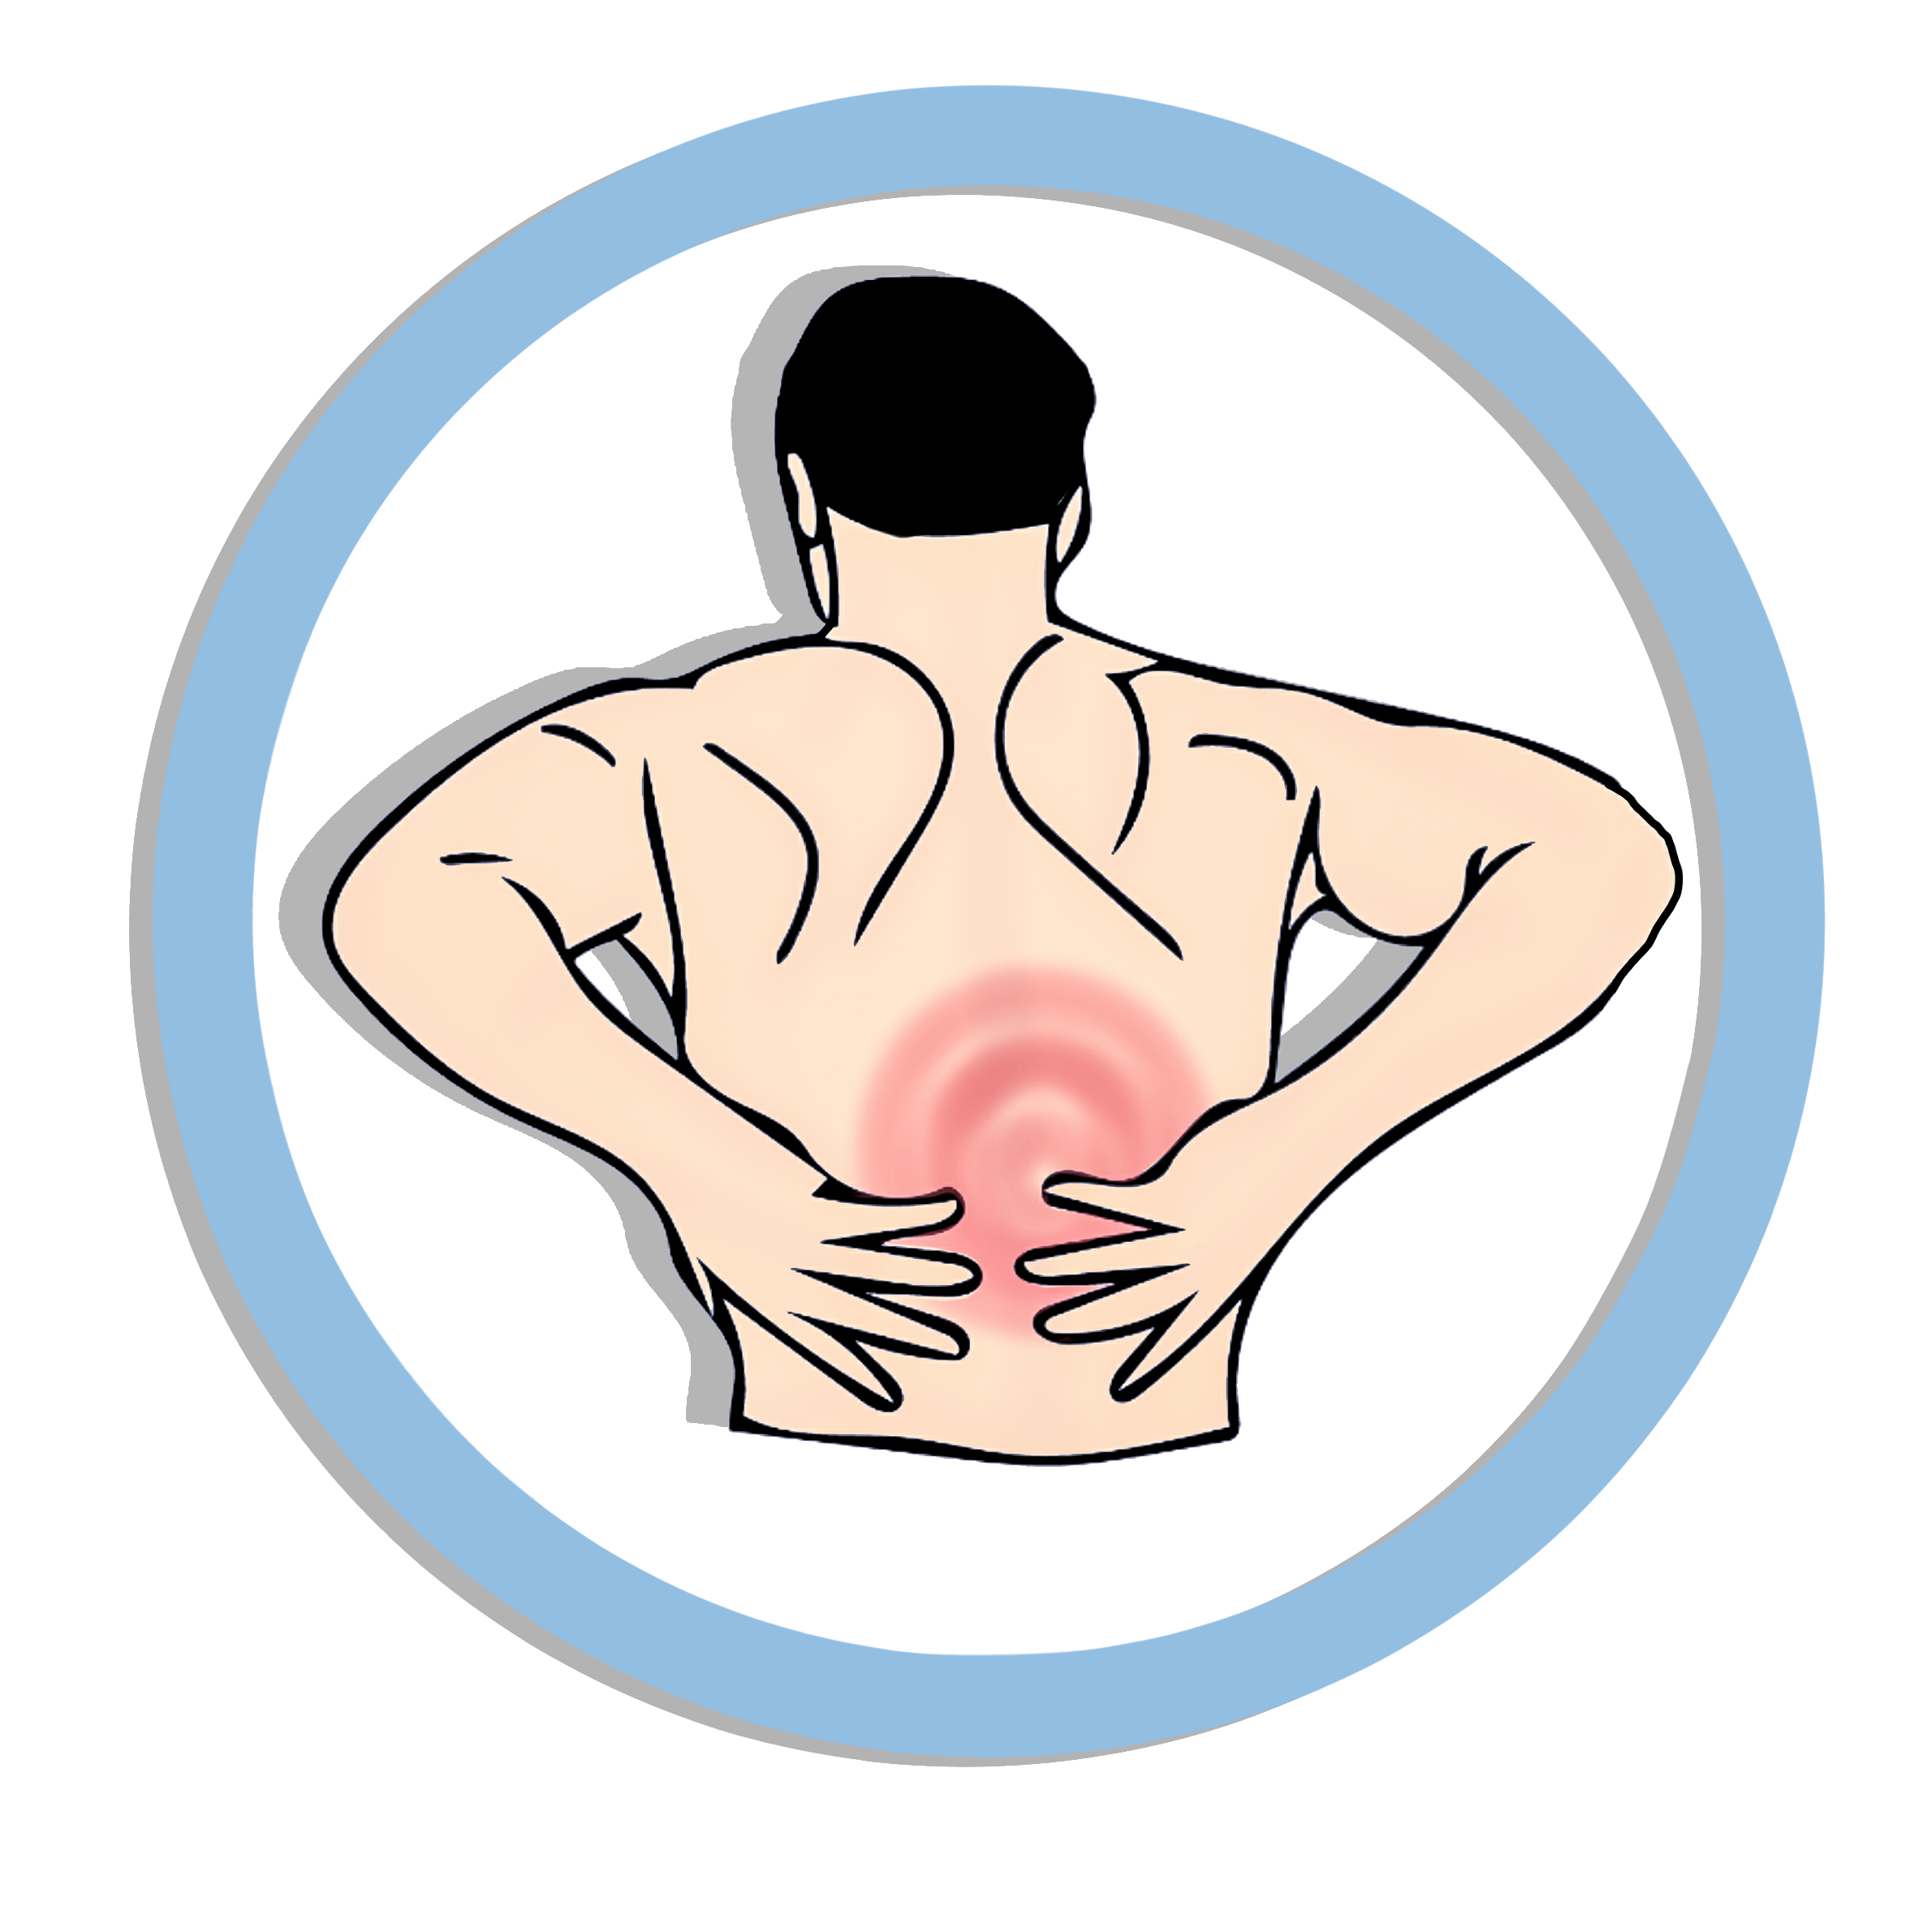 Pain clipart chronic pain. Comprehensive guide to treat